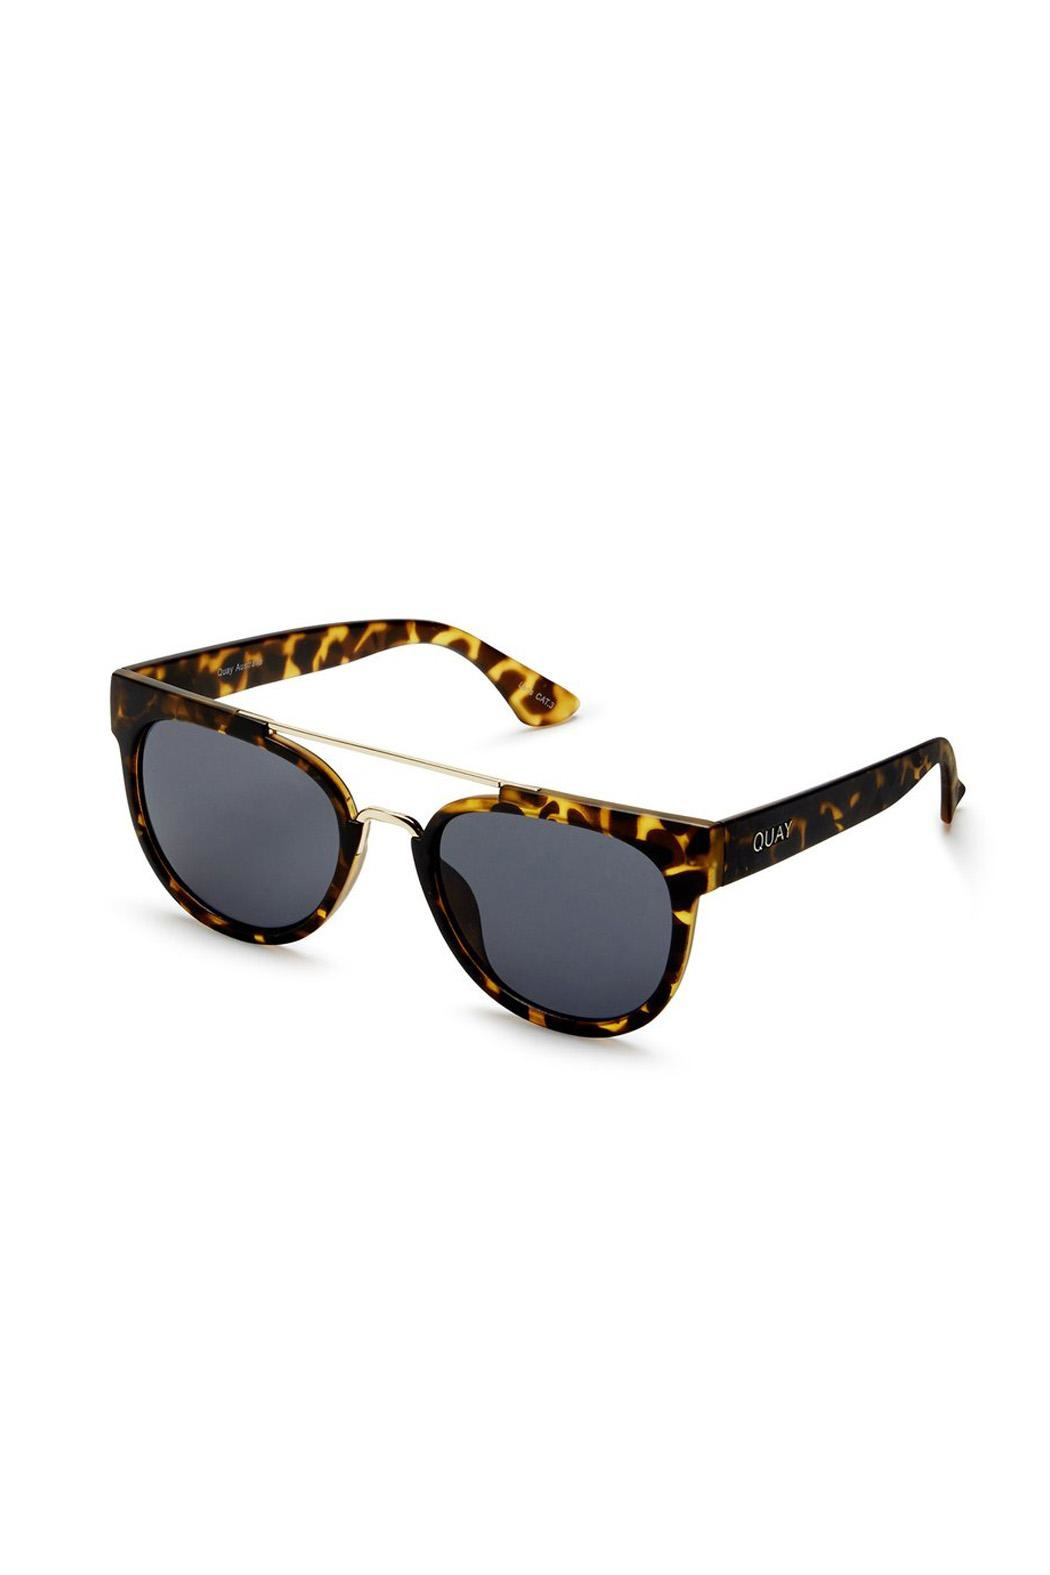 7848f928d1 Quay Australia Quay Odin Sunglasses from New Jersey by Pretty Edgy ...